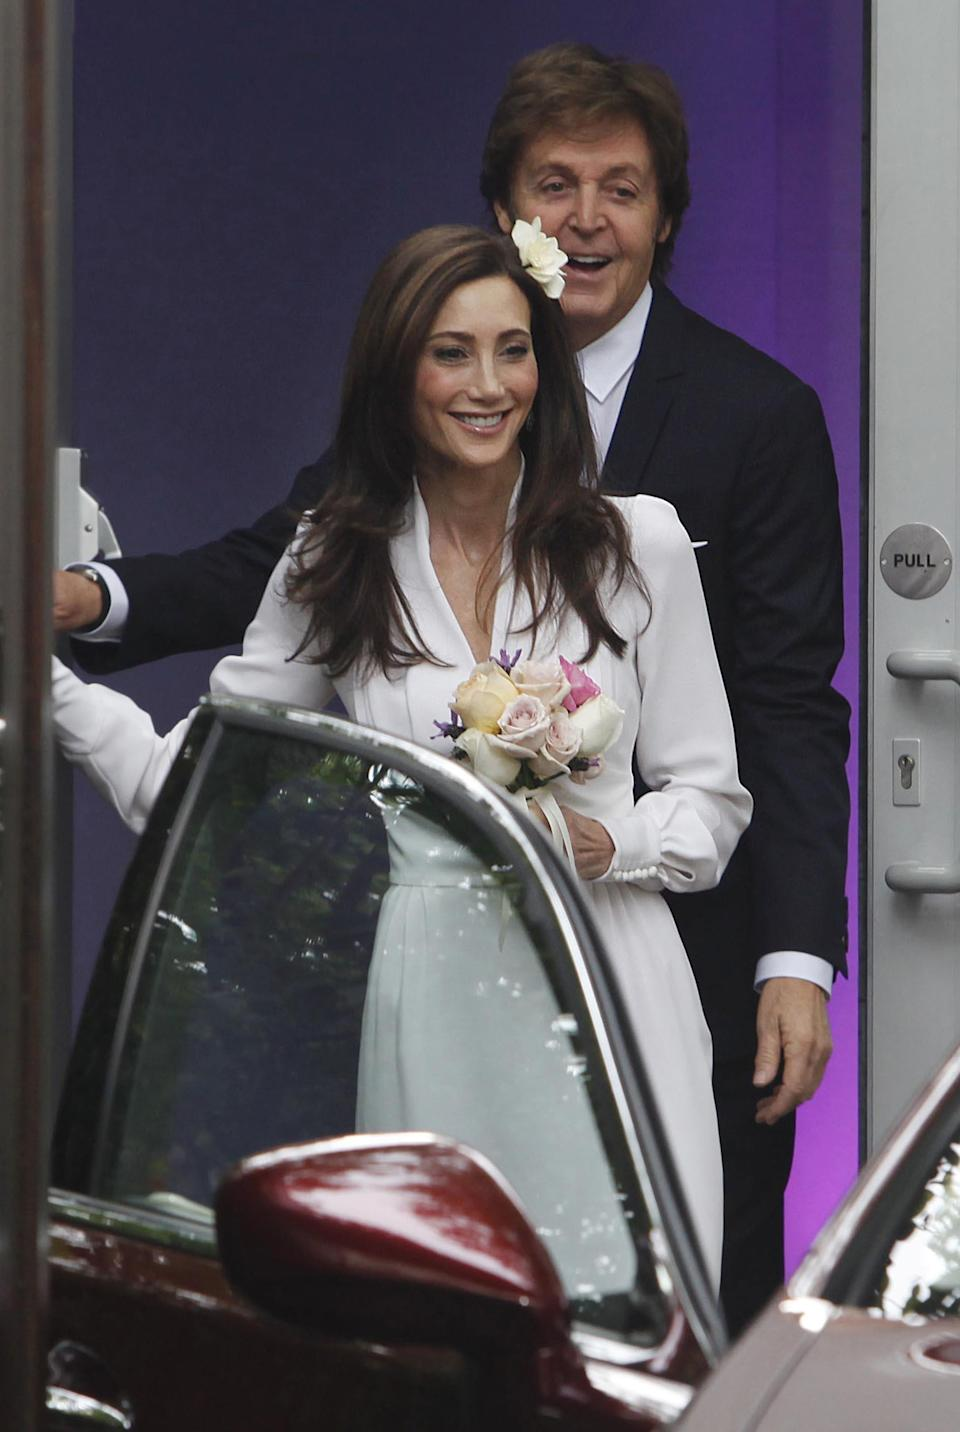 Nancy Shevell with Sir Paul McCartney leaving his house in north London to get married at Marylebone Town Hall,  in the St. John's Wood neighborhood of London Sunday Oct. 9, 2011. (AP Photo / David Parry, PA) UNITED KINGDOM OUT - NO SALES - NO ARCHIVES